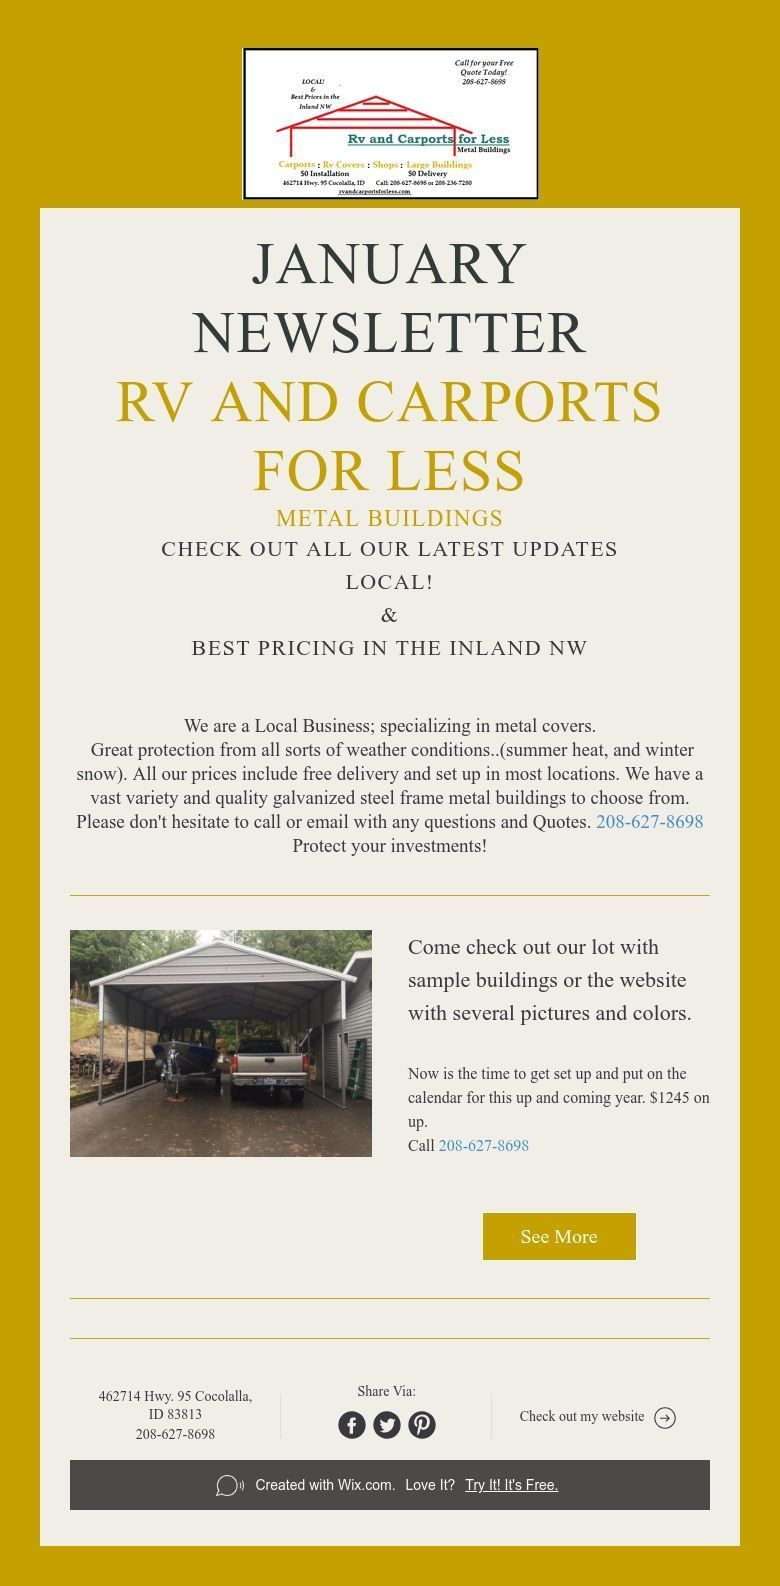 January Newsletter 10 off now Rv and carports for less